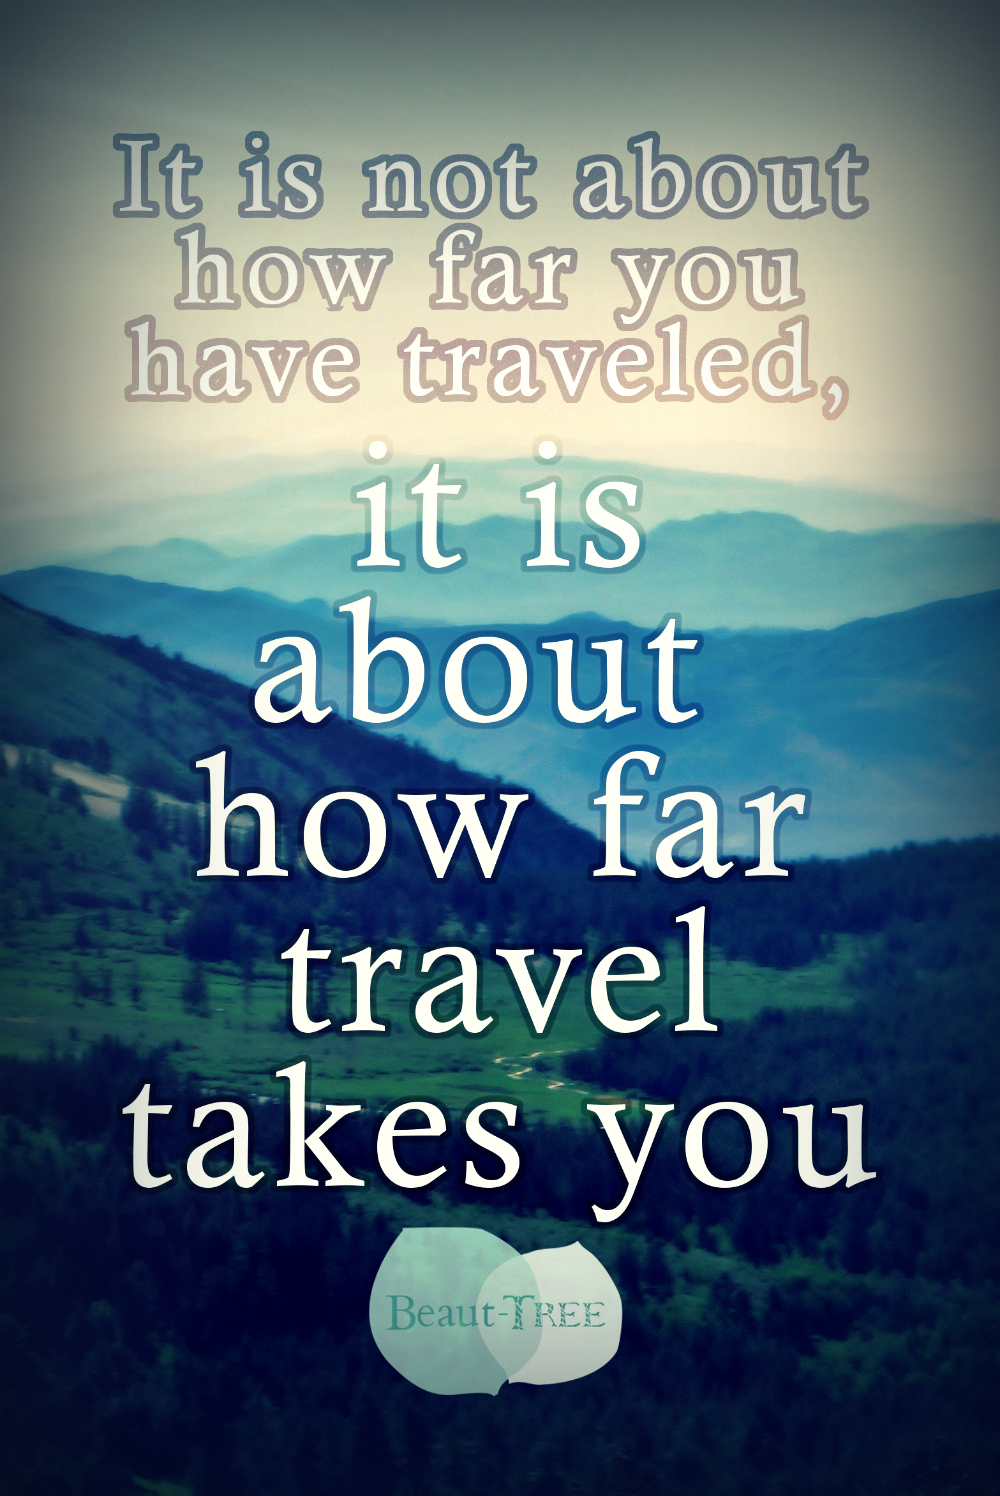 It is not about how far you have traveled, it is about how far travel takes you.